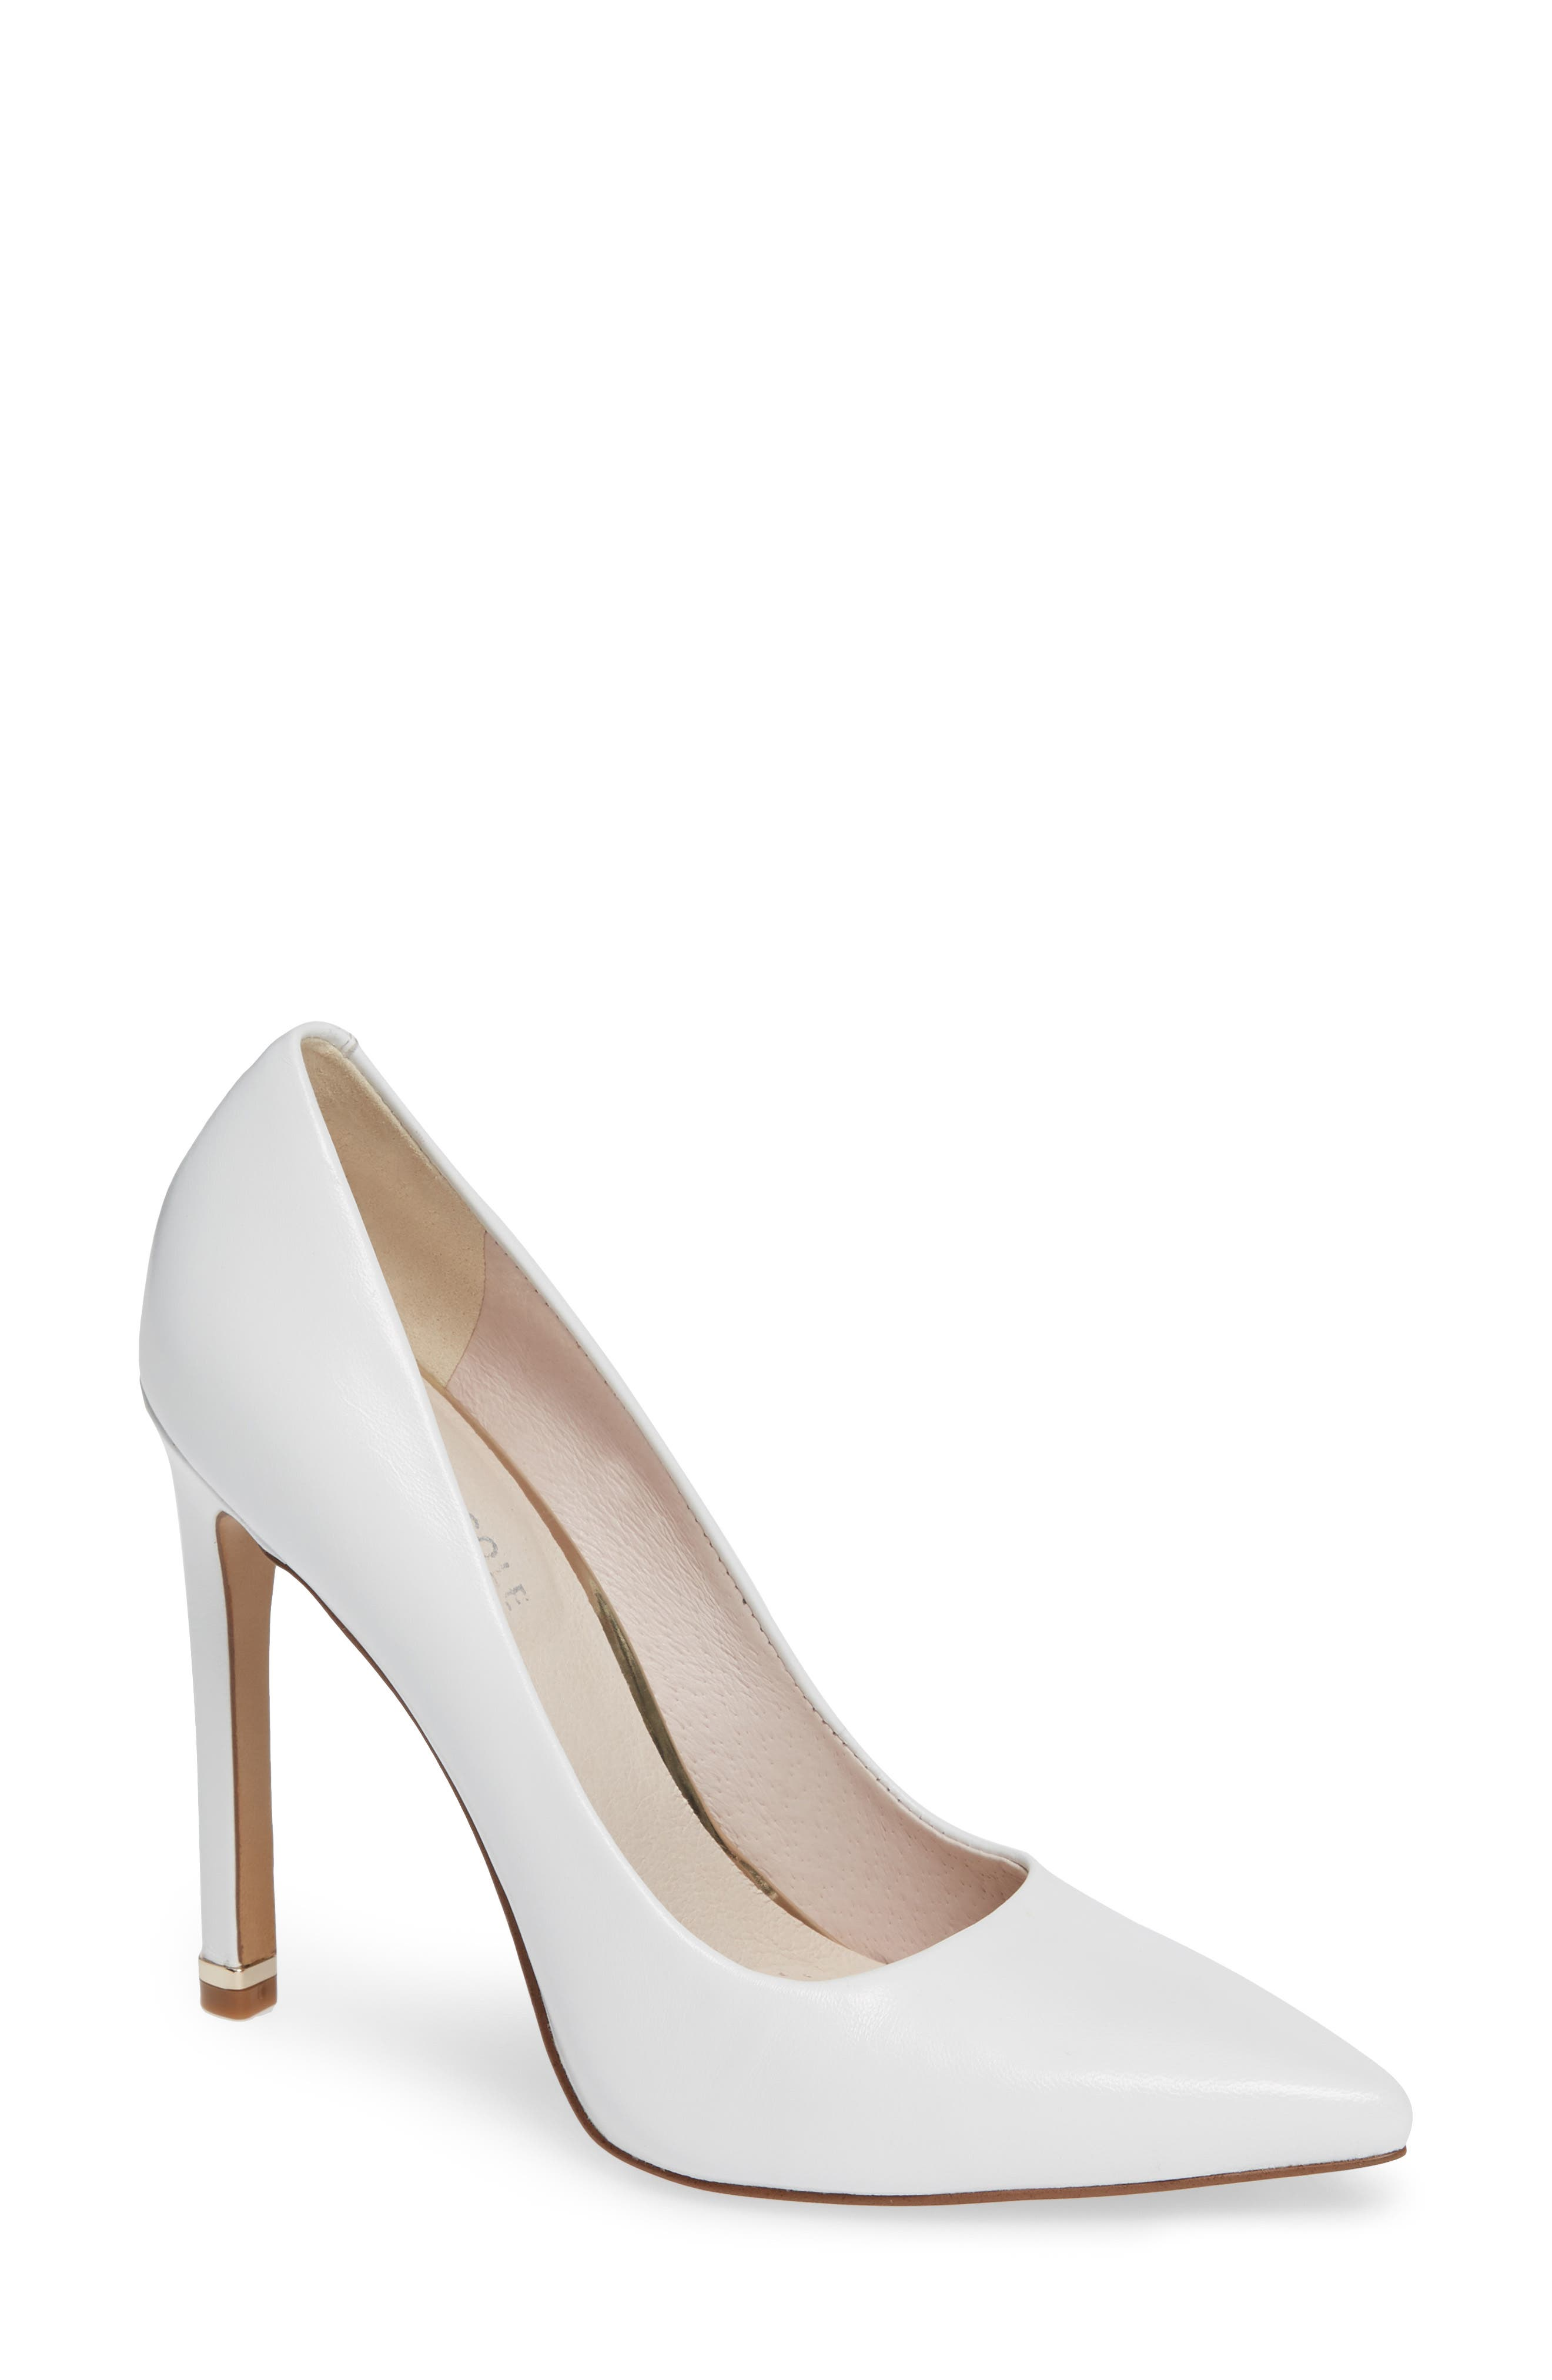 Riley 110 Pointy Toe Pump,                         Main,                         color, WHITE LEATHER